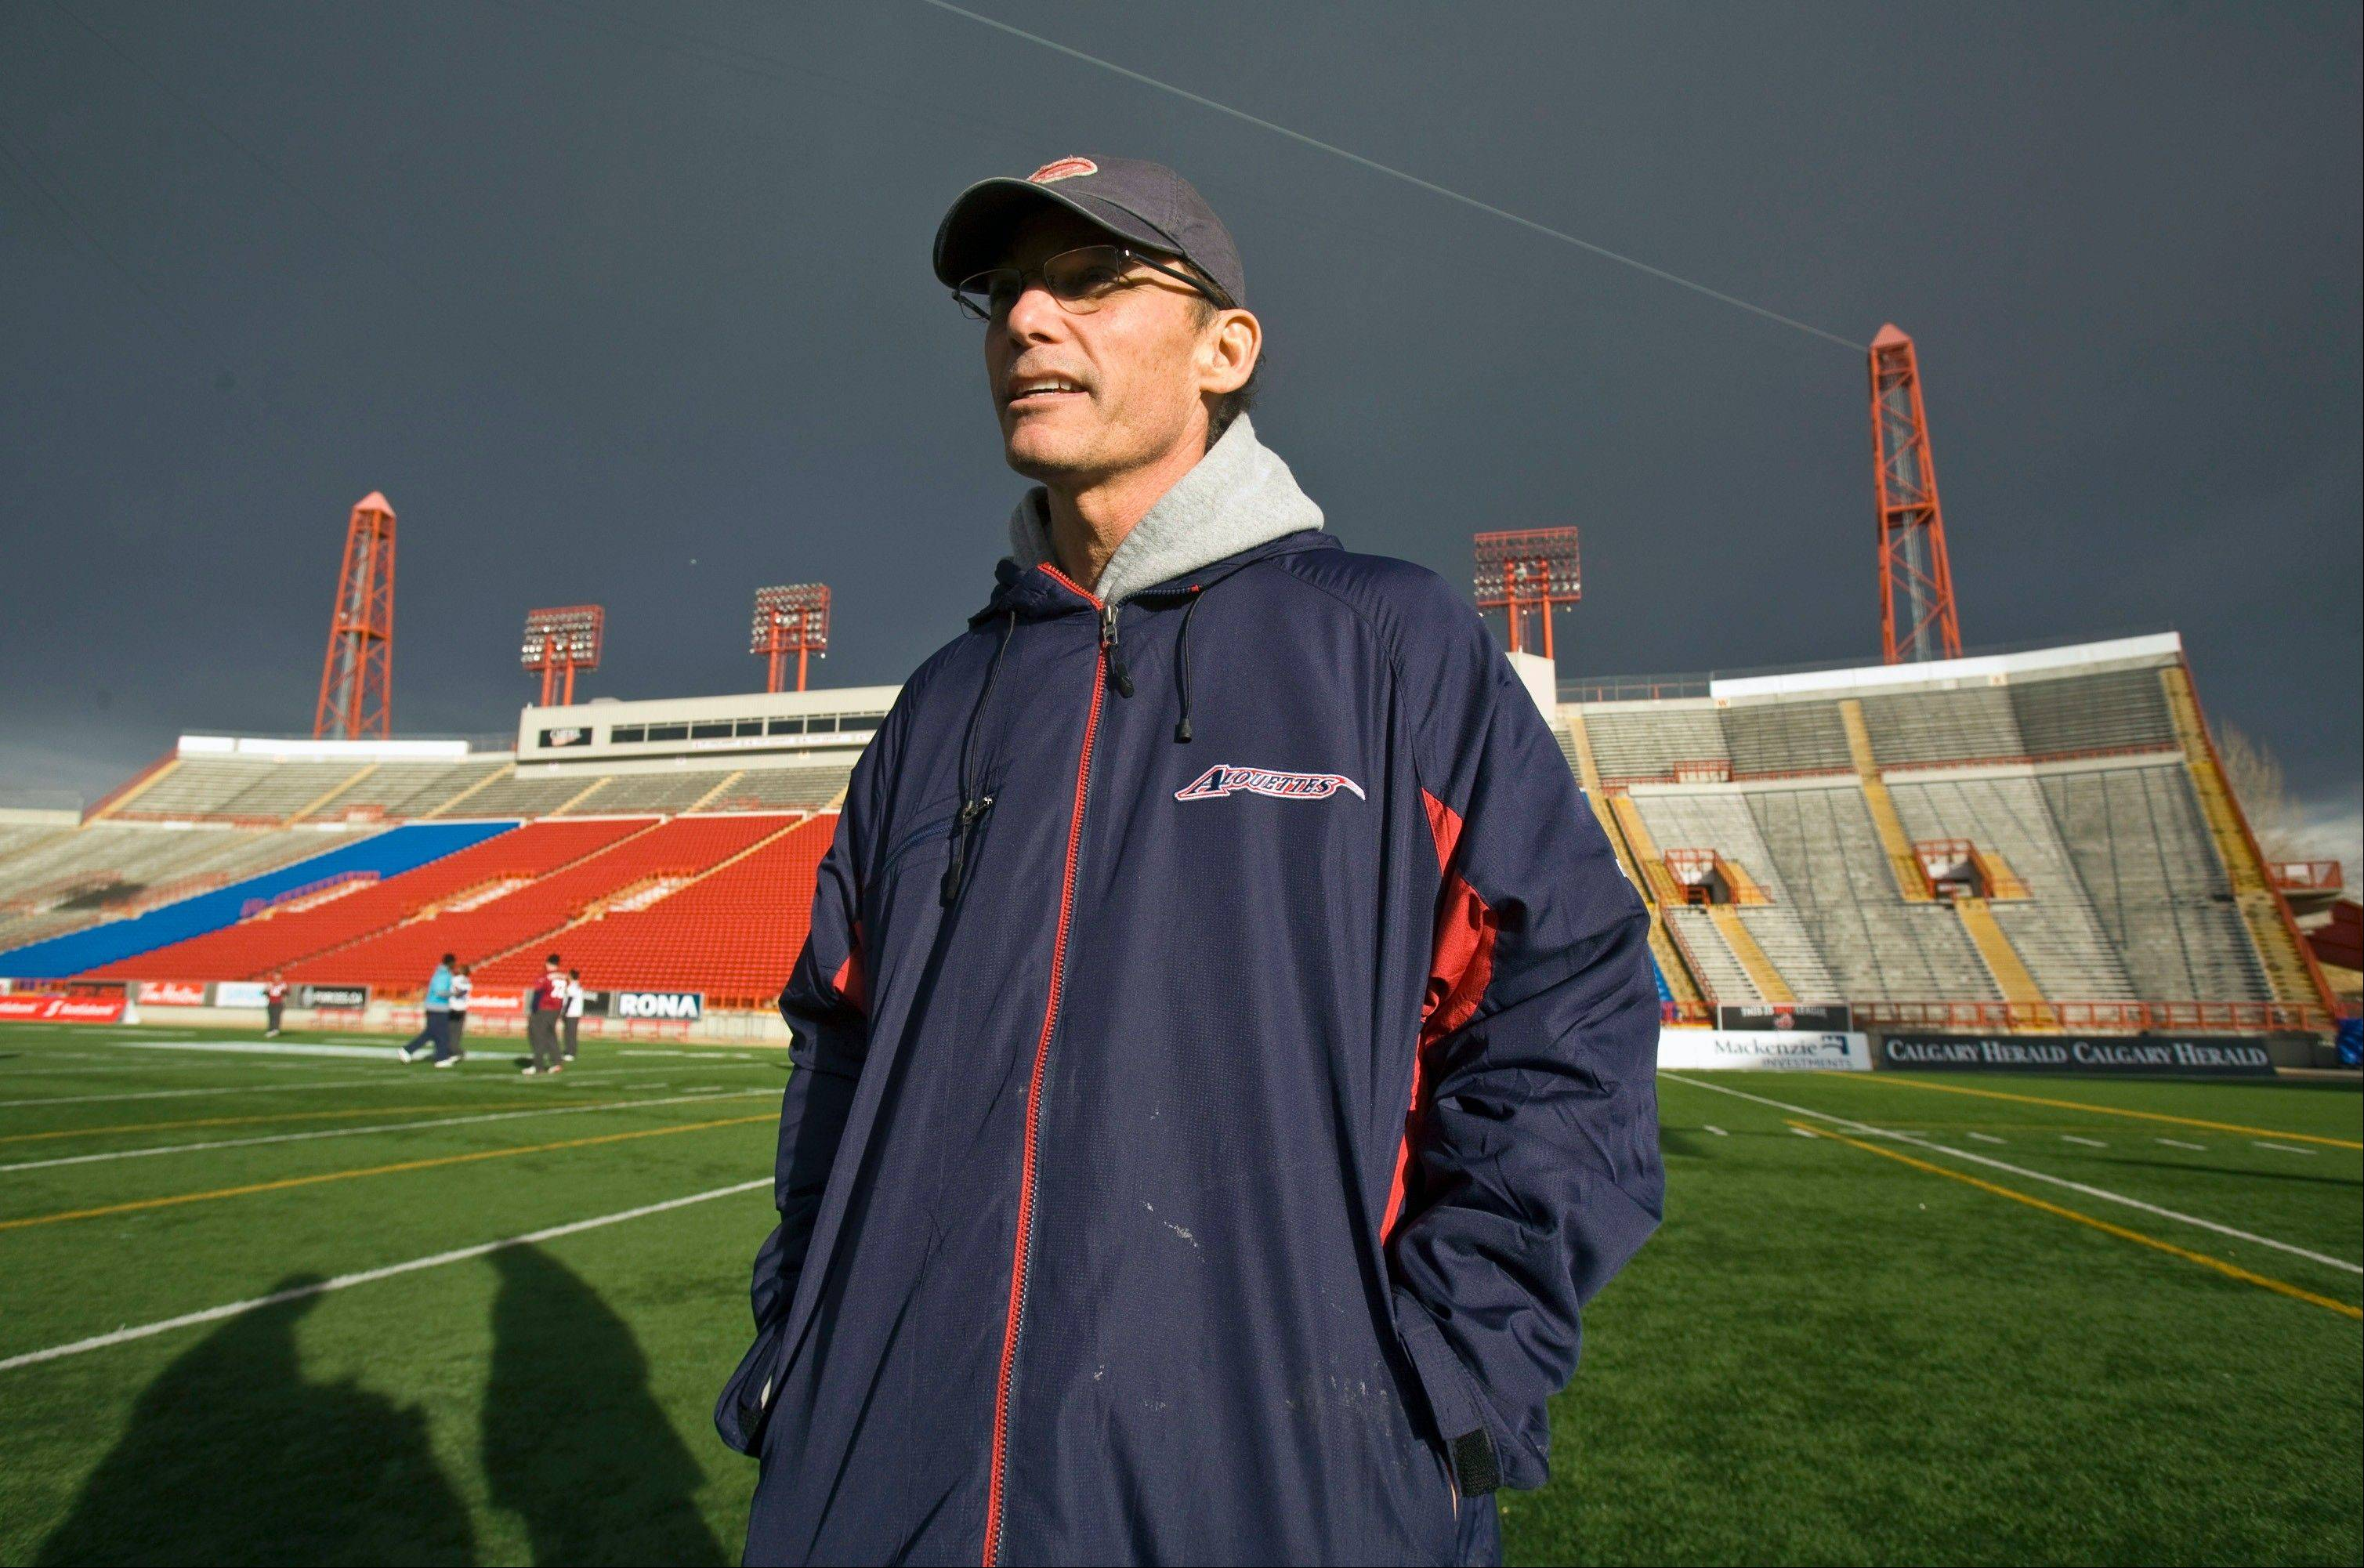 Marc Trestman is the 14th head coach of the Chicago Bears franchise. He won two Grey Cup titles in the Canadian Football League and has 17 years of NFL experience.